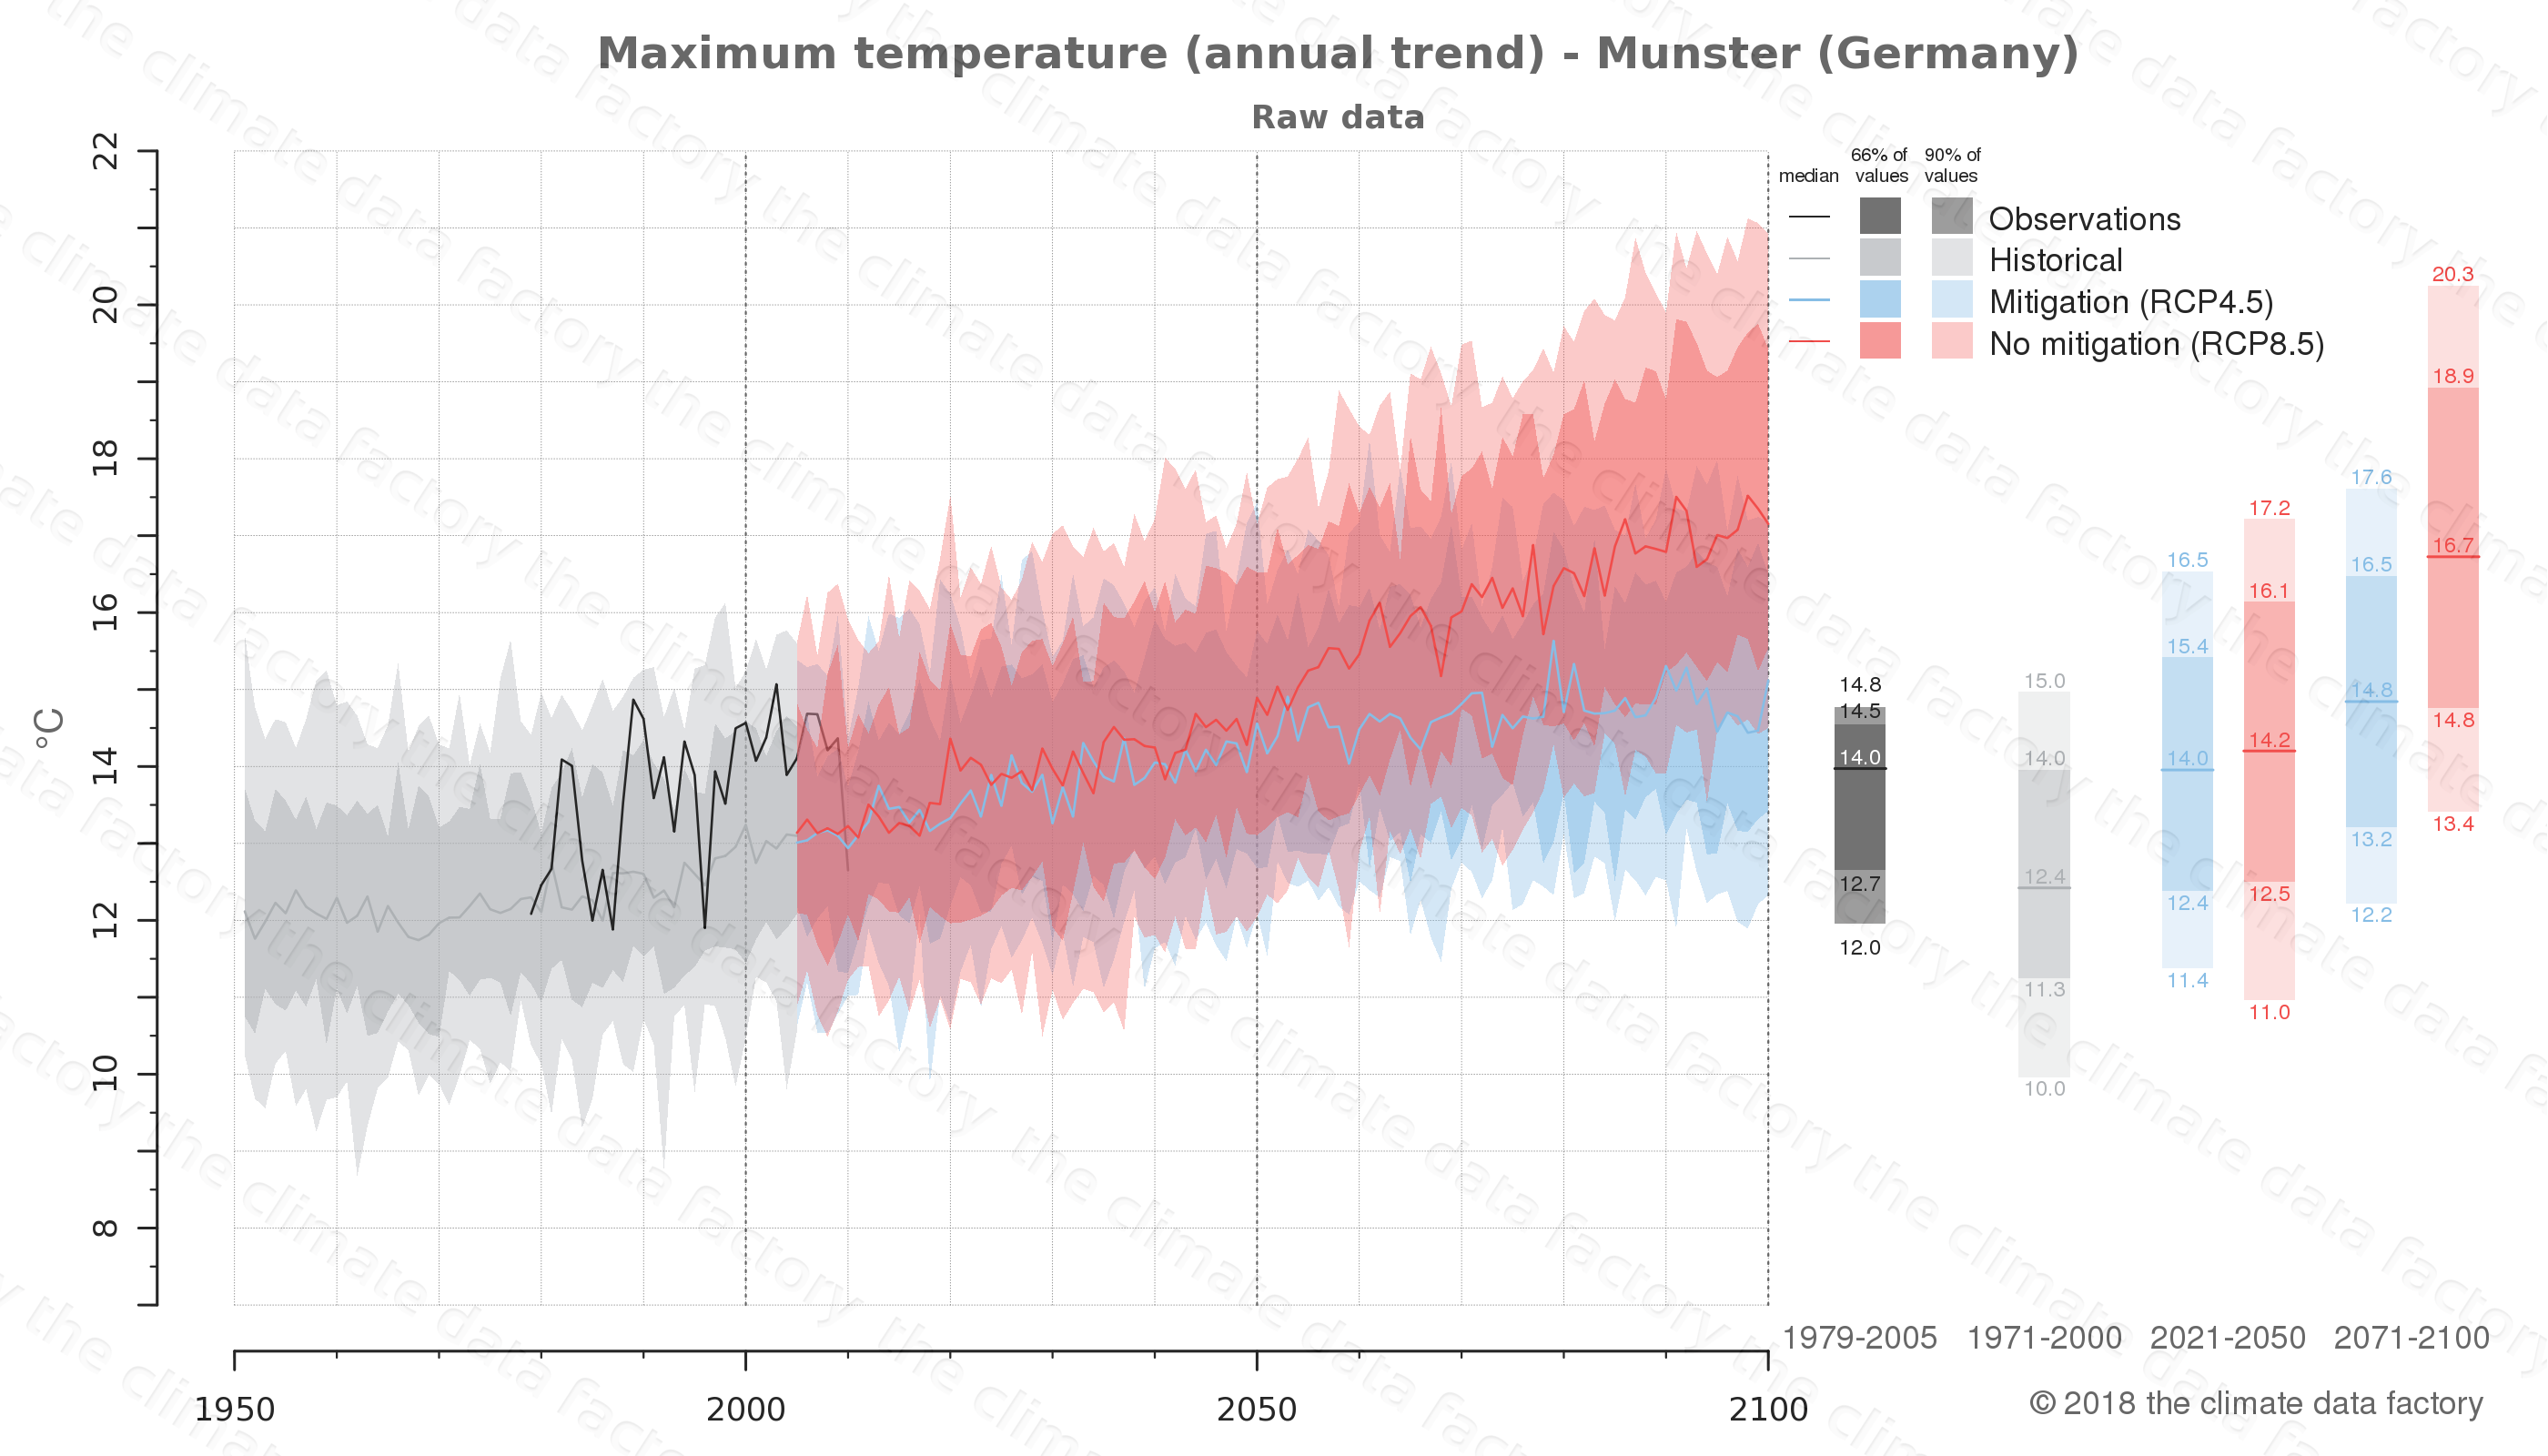 climate change data policy adaptation climate graph city data maximum-temperature munster germany